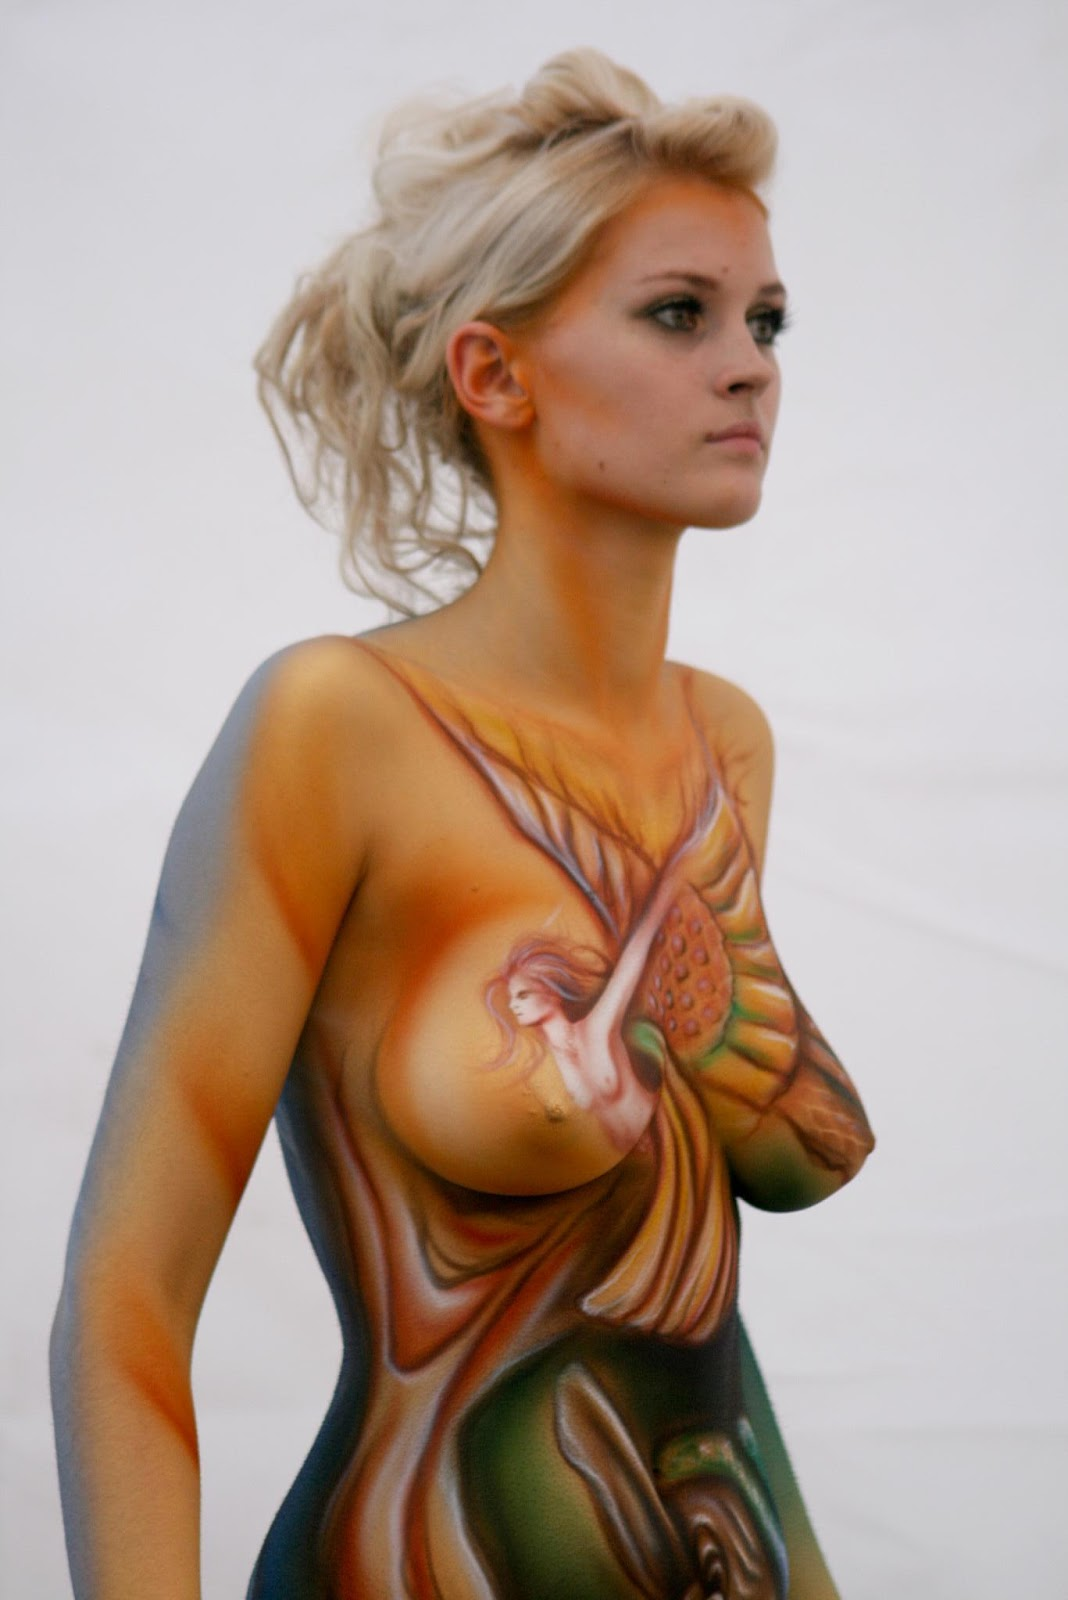 All not woman body nude paint you